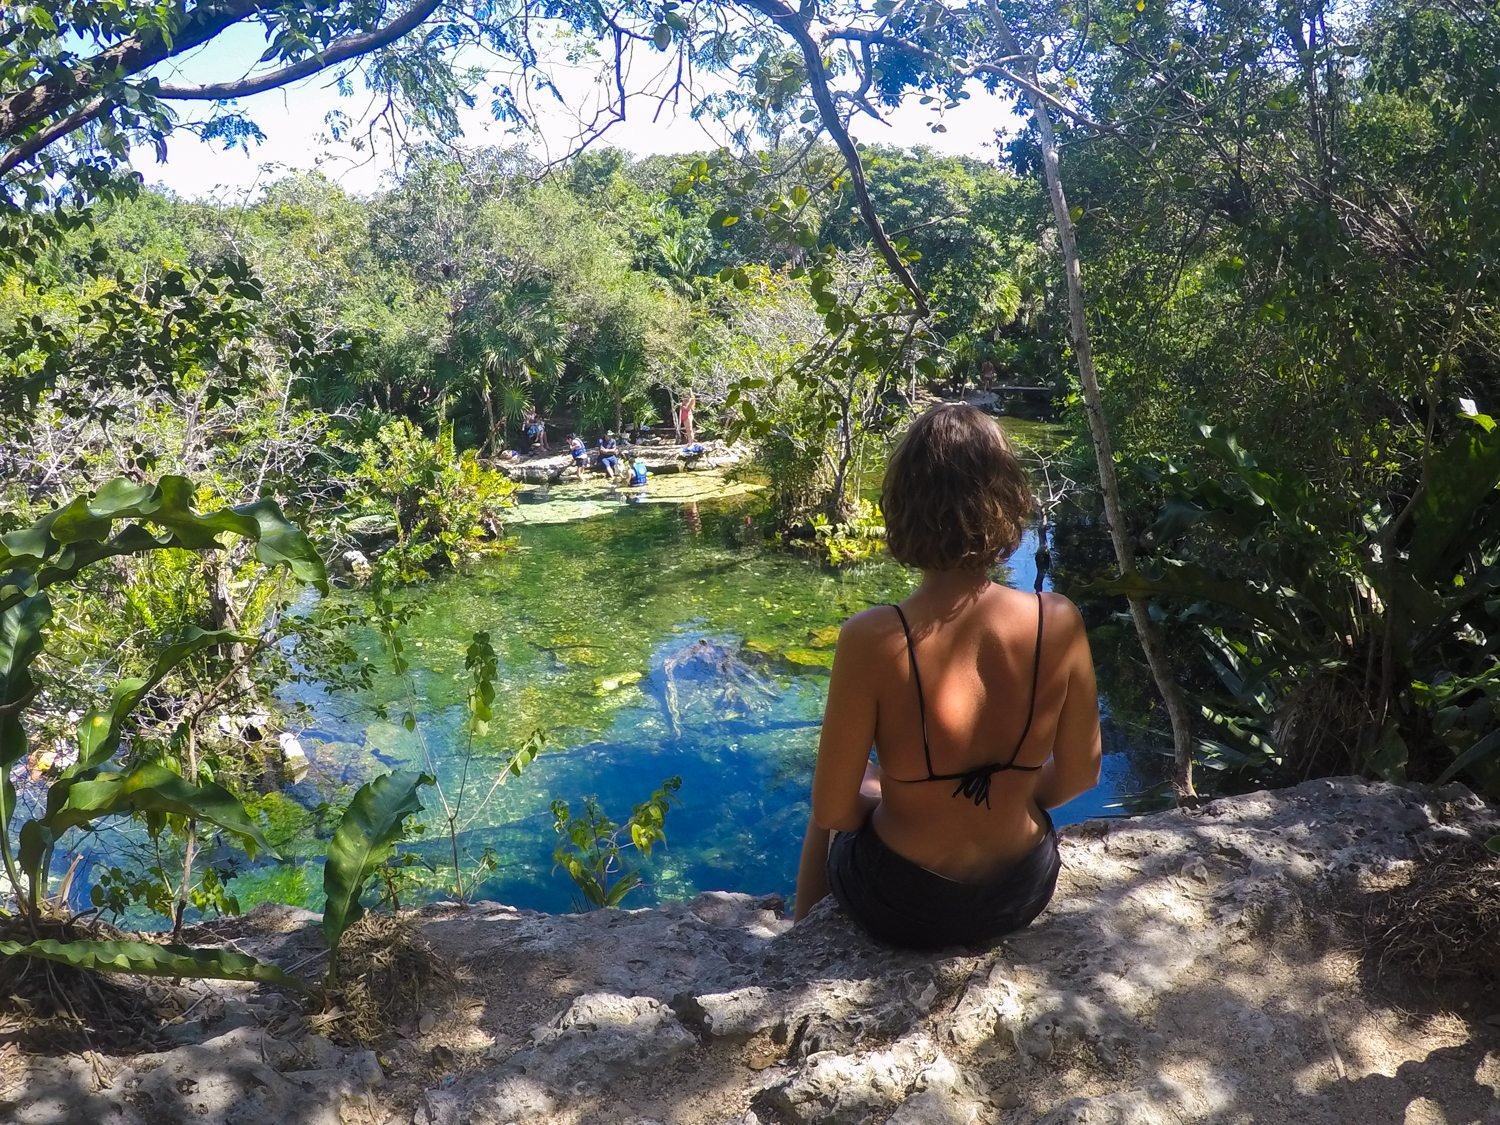 The Most Beautiful Cenotes in Playa del Carmen: The Ultimate Guide